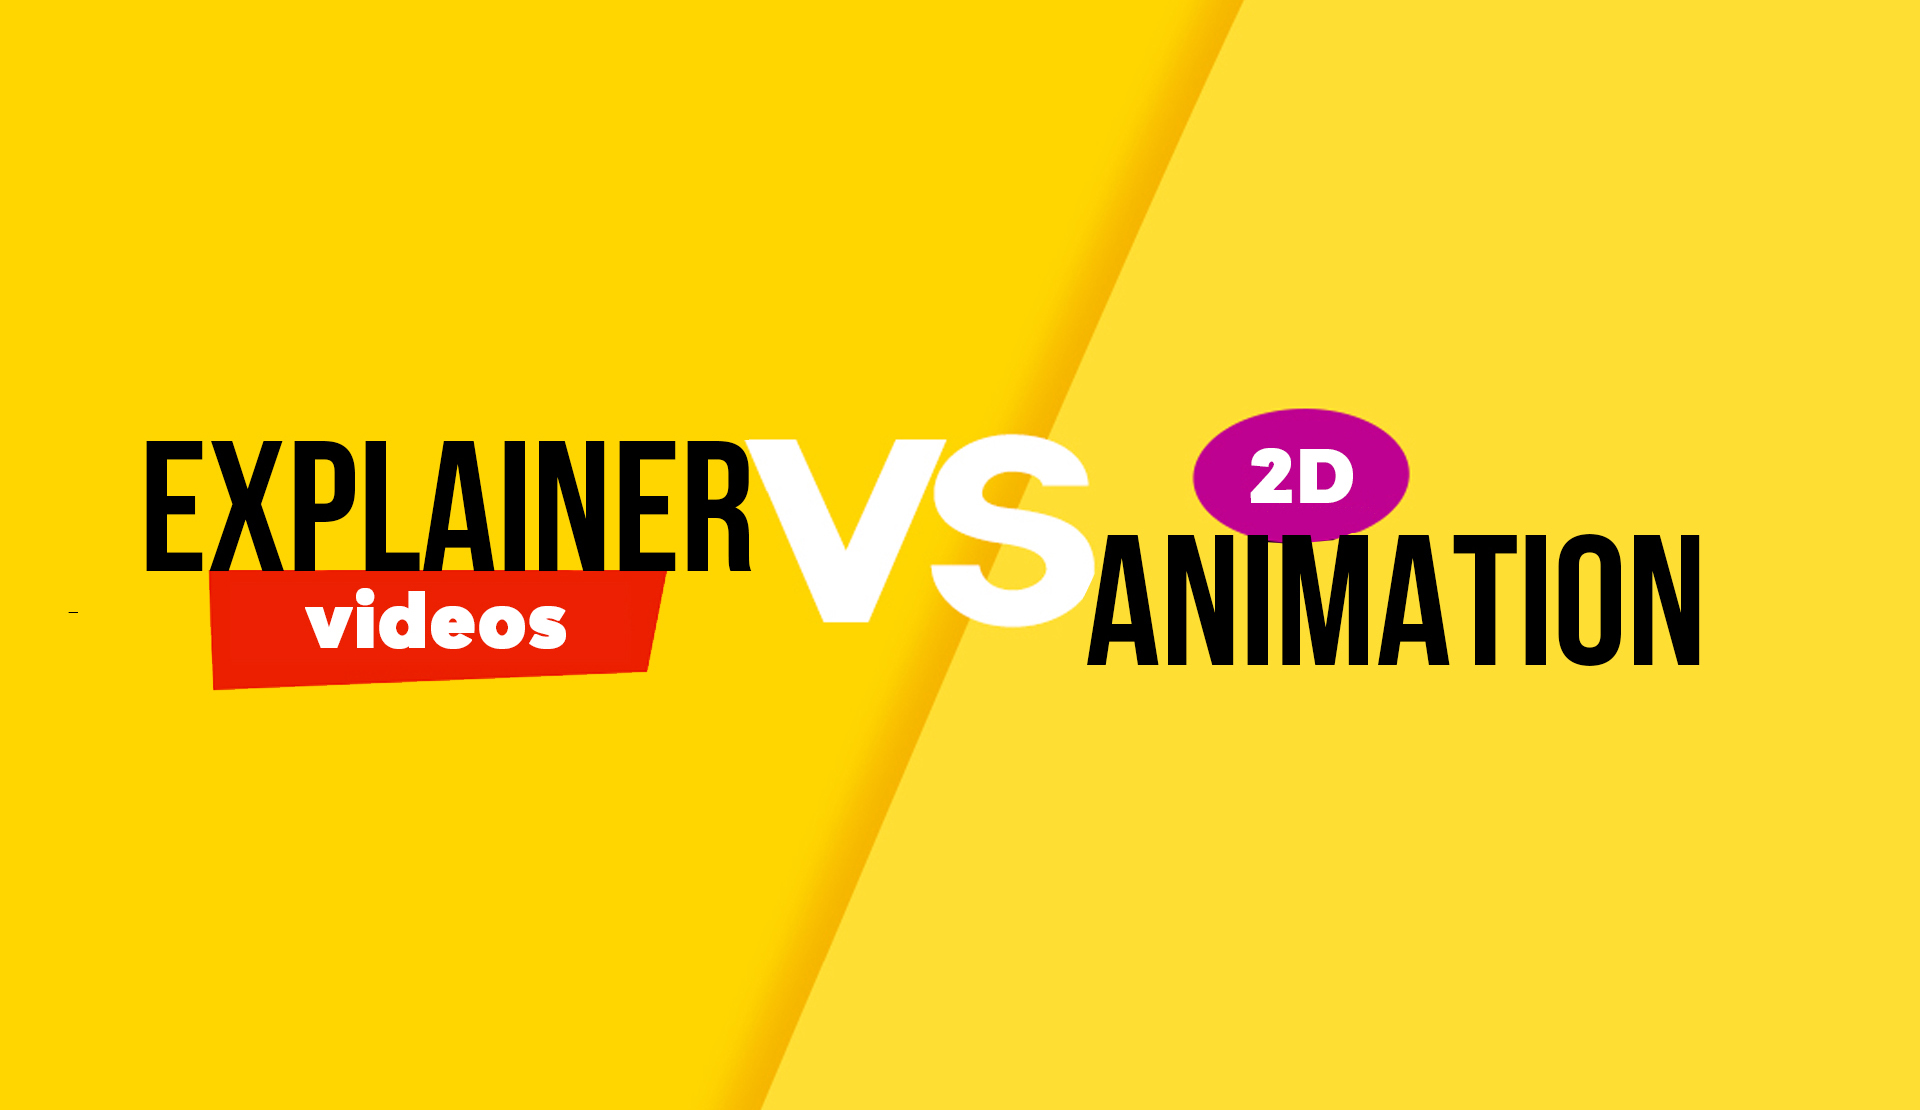 Difference between 2d animation and an Explainer Video